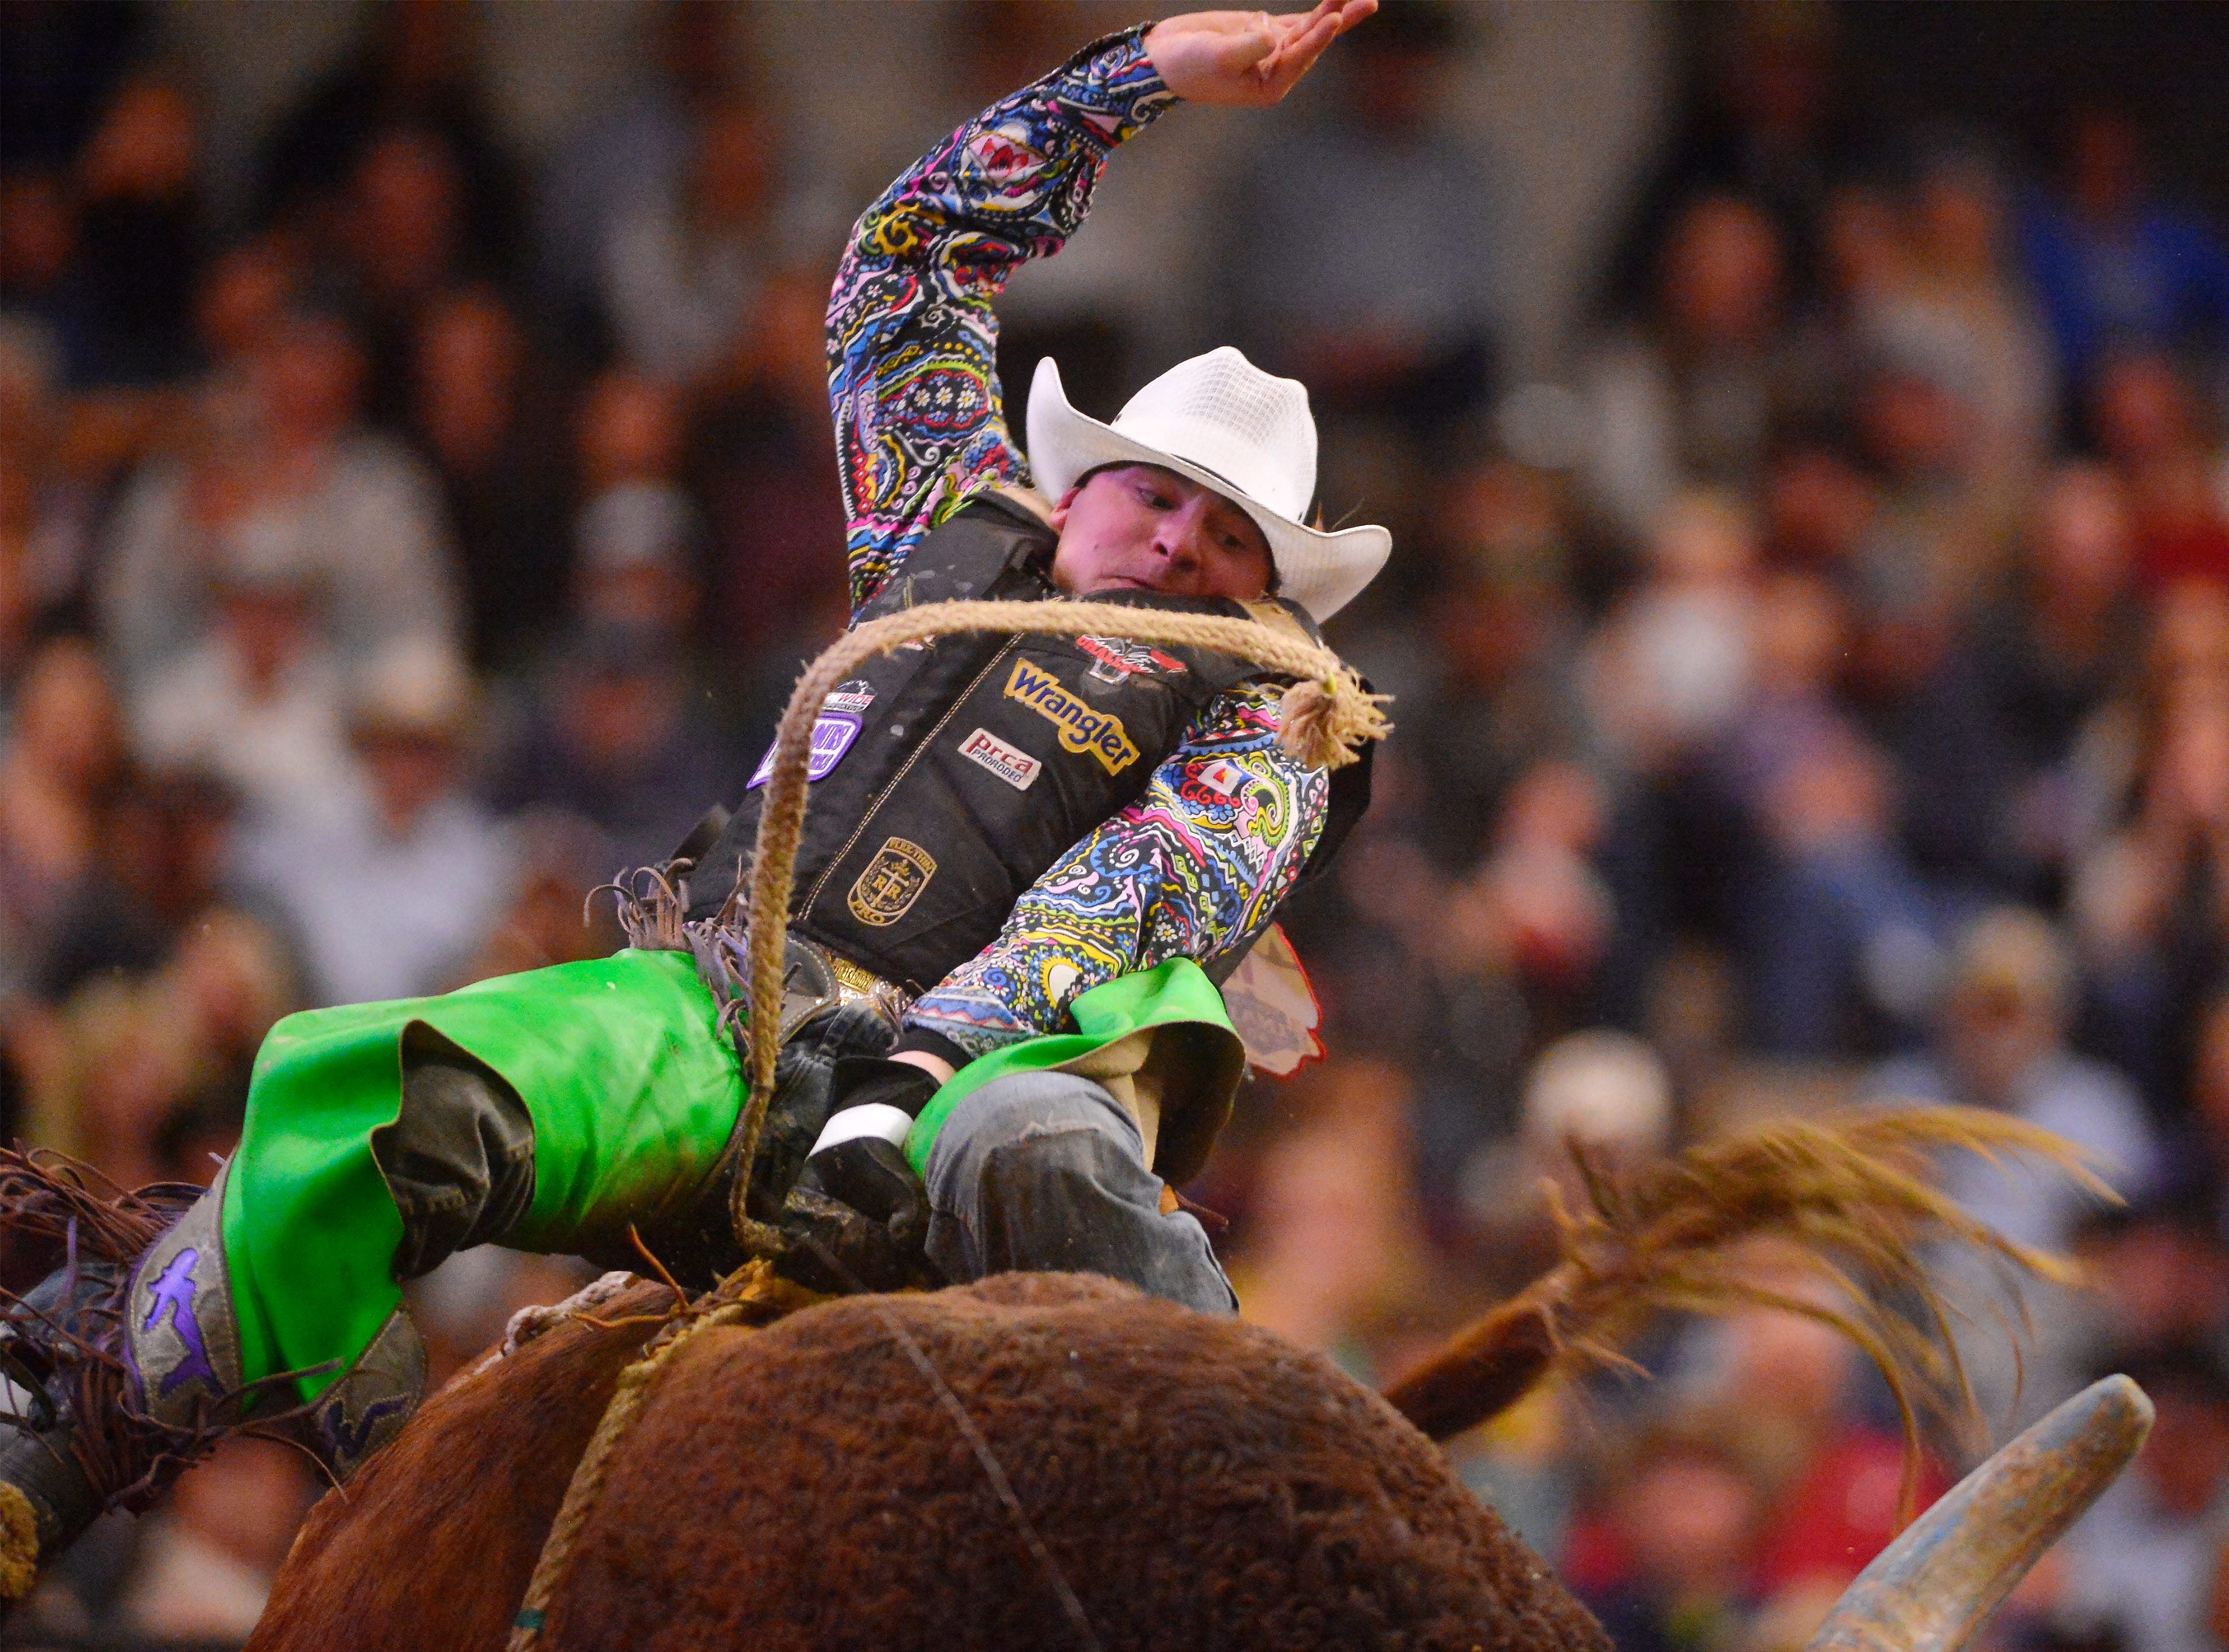 Hawk Whitt rides in the bull riding event during the Montana Pro Rodeo Circuit Finals in the Pacific Steel and Recycling Four Seasons Arena, Friday, January 11, 2019.